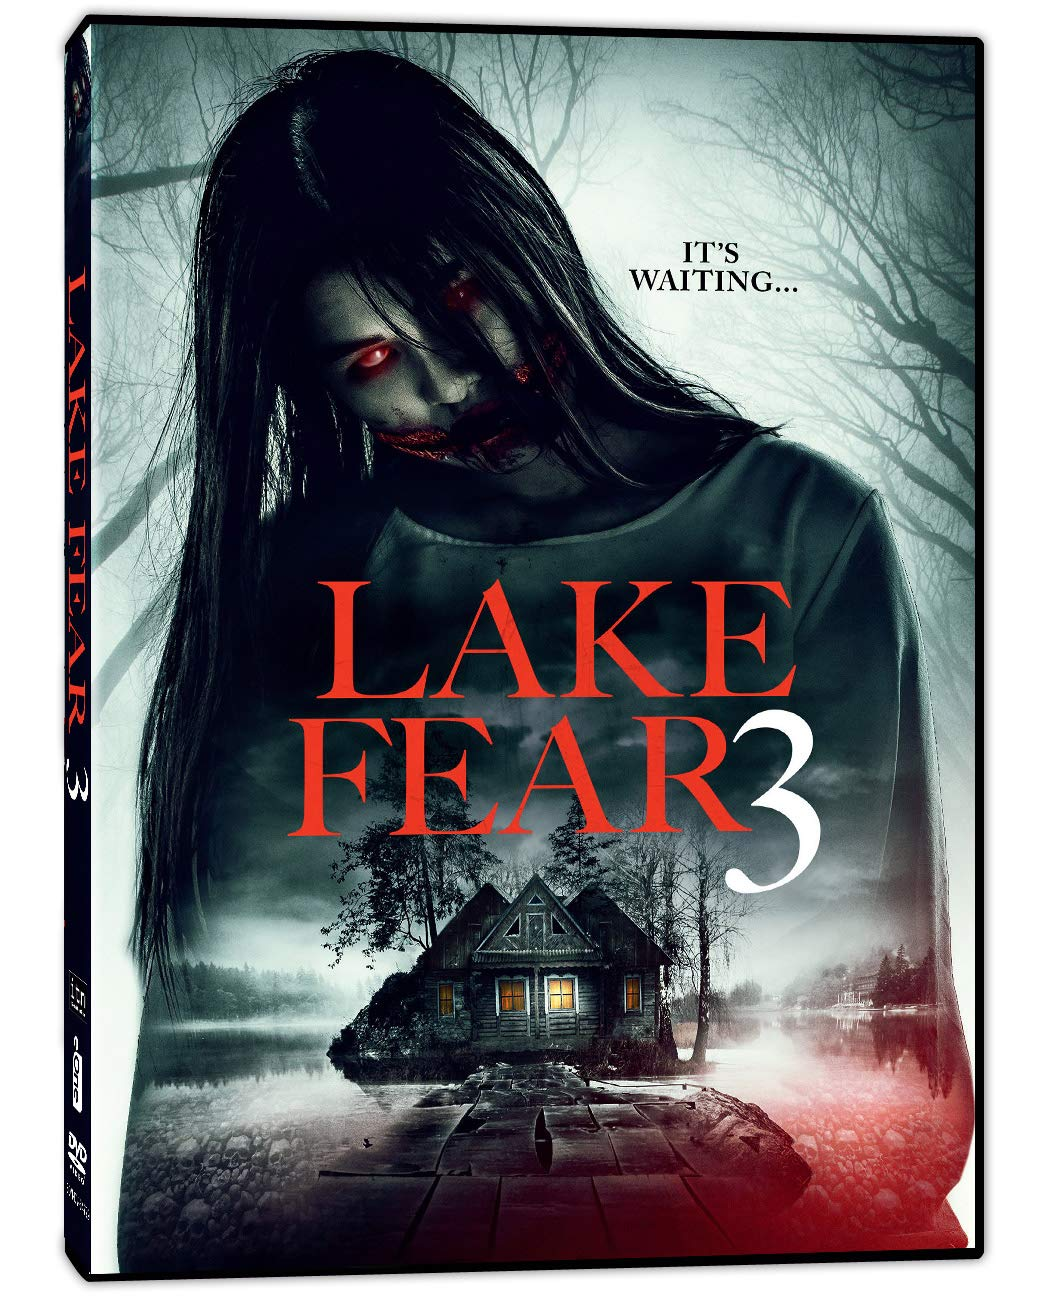 DVD : Lake Fear 3 (Dolby, AC-3, Widescreen, Subtitled)